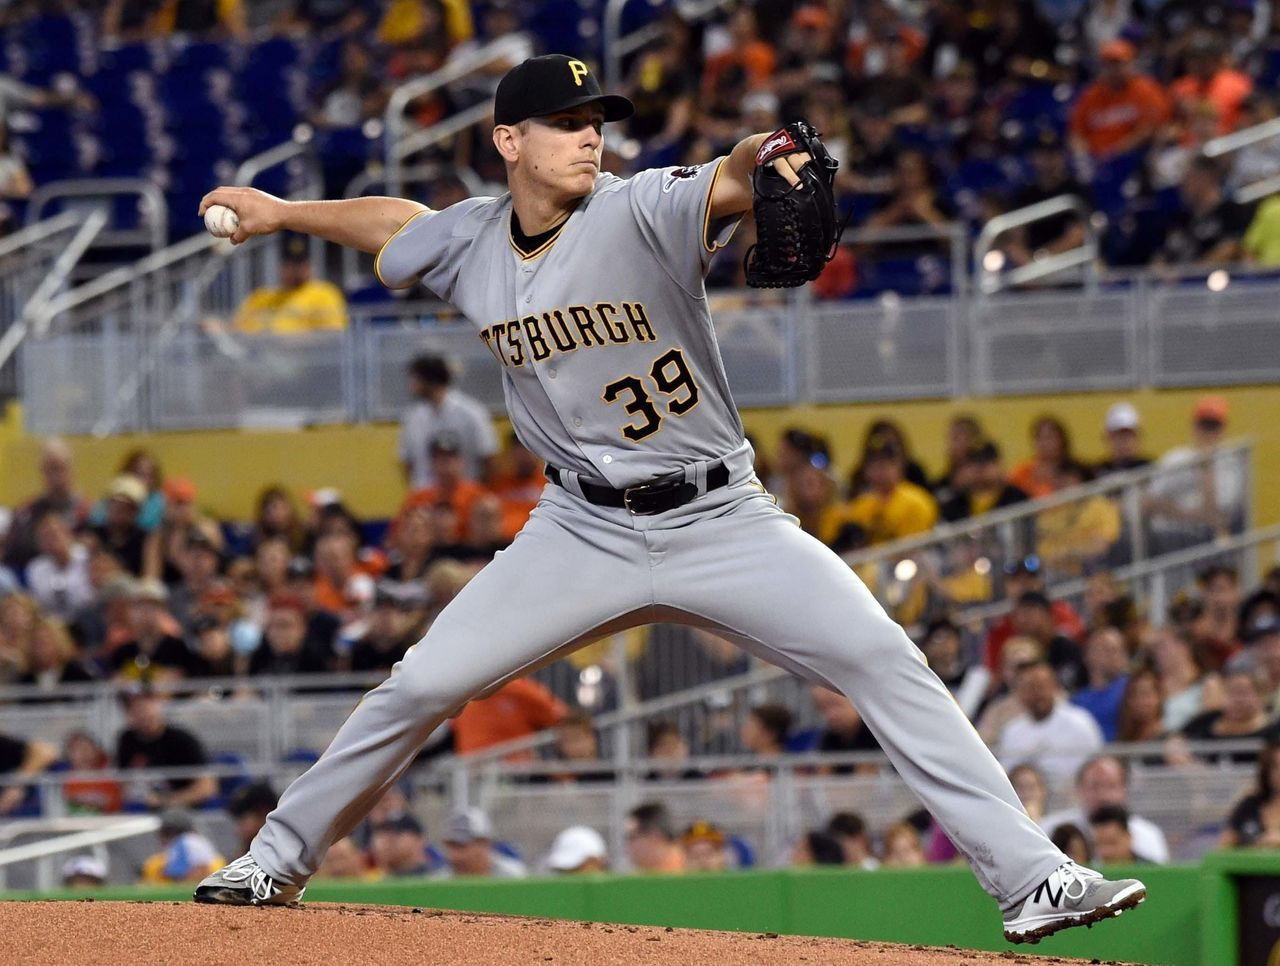 Cropped 2017 04 30t184018z 963180536 nocid rtrmadp 3 mlb pittsburgh pirates at miami marlins